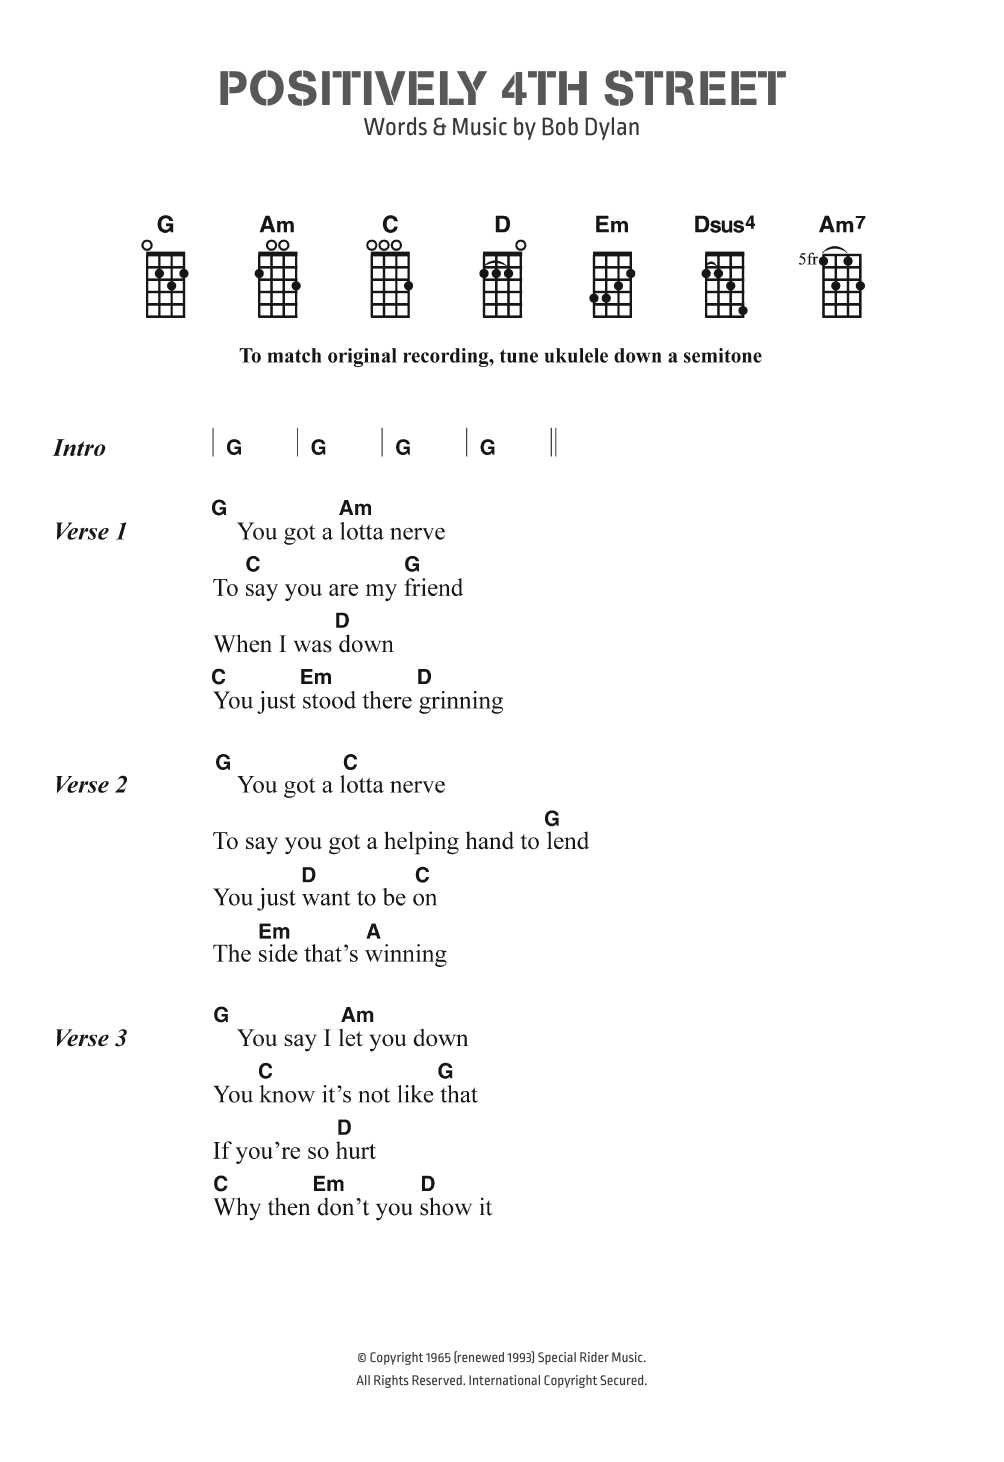 Positively 4th Street Sheet Music